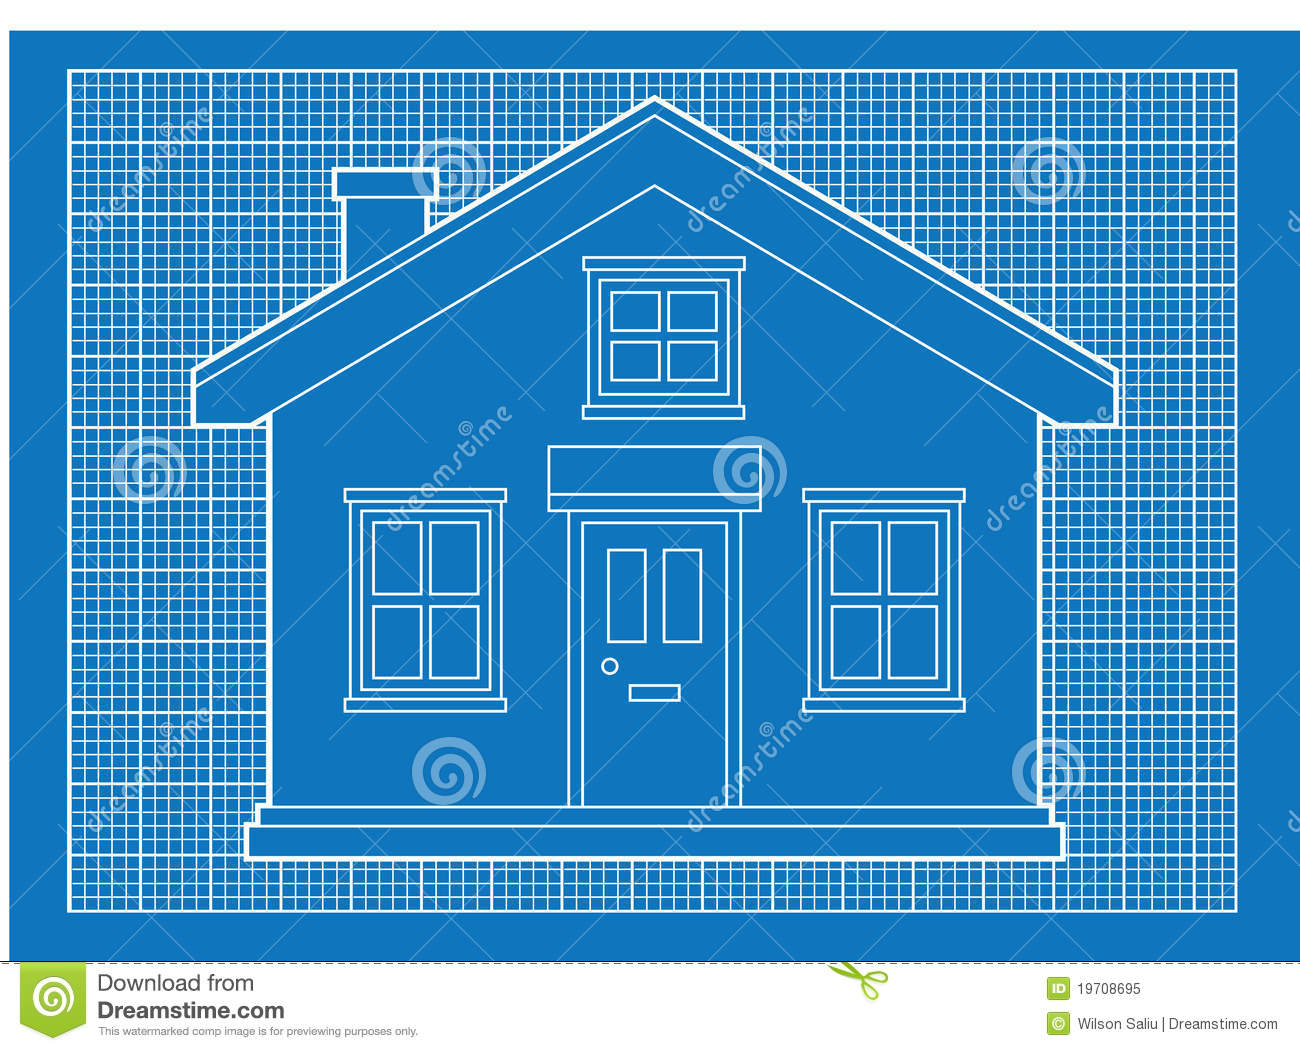 Simple house blueprints royalty free stock photo image for House blueprint images